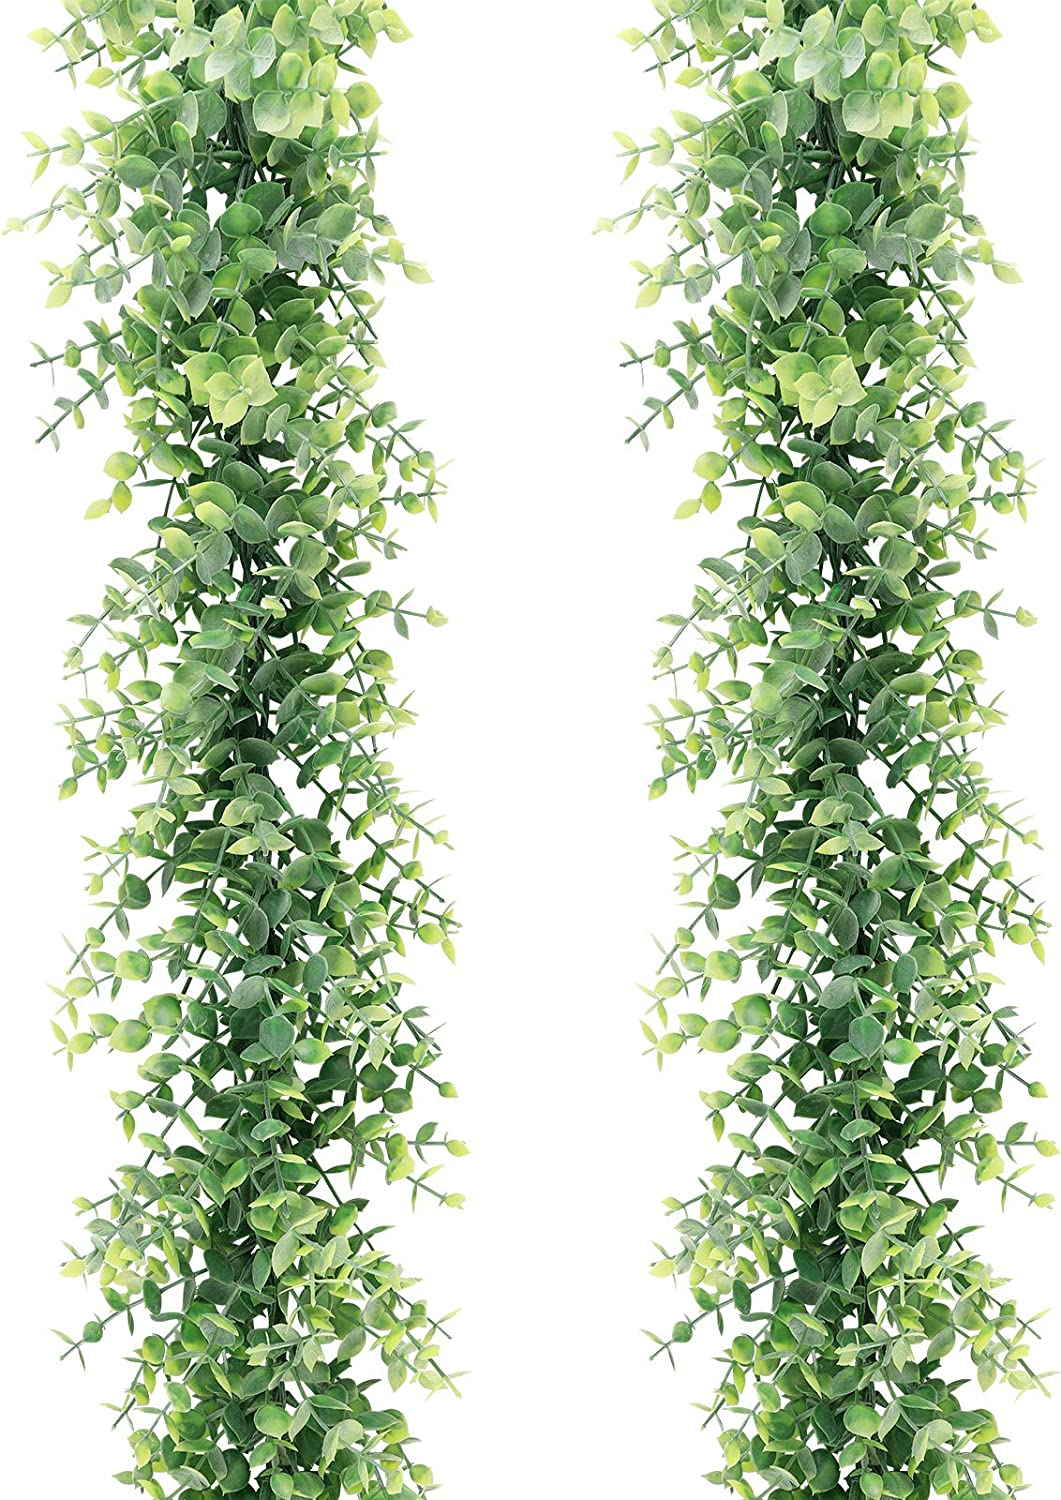 COCOBOO 2 Pack Artificial Eucalyptus Garland, Artificial Vines Faux Eucalyptus Greenery Garland Wedding Backdrop Arch Wall Decor, 6 Feet/pcs Fake Boxwood Hanging Plant